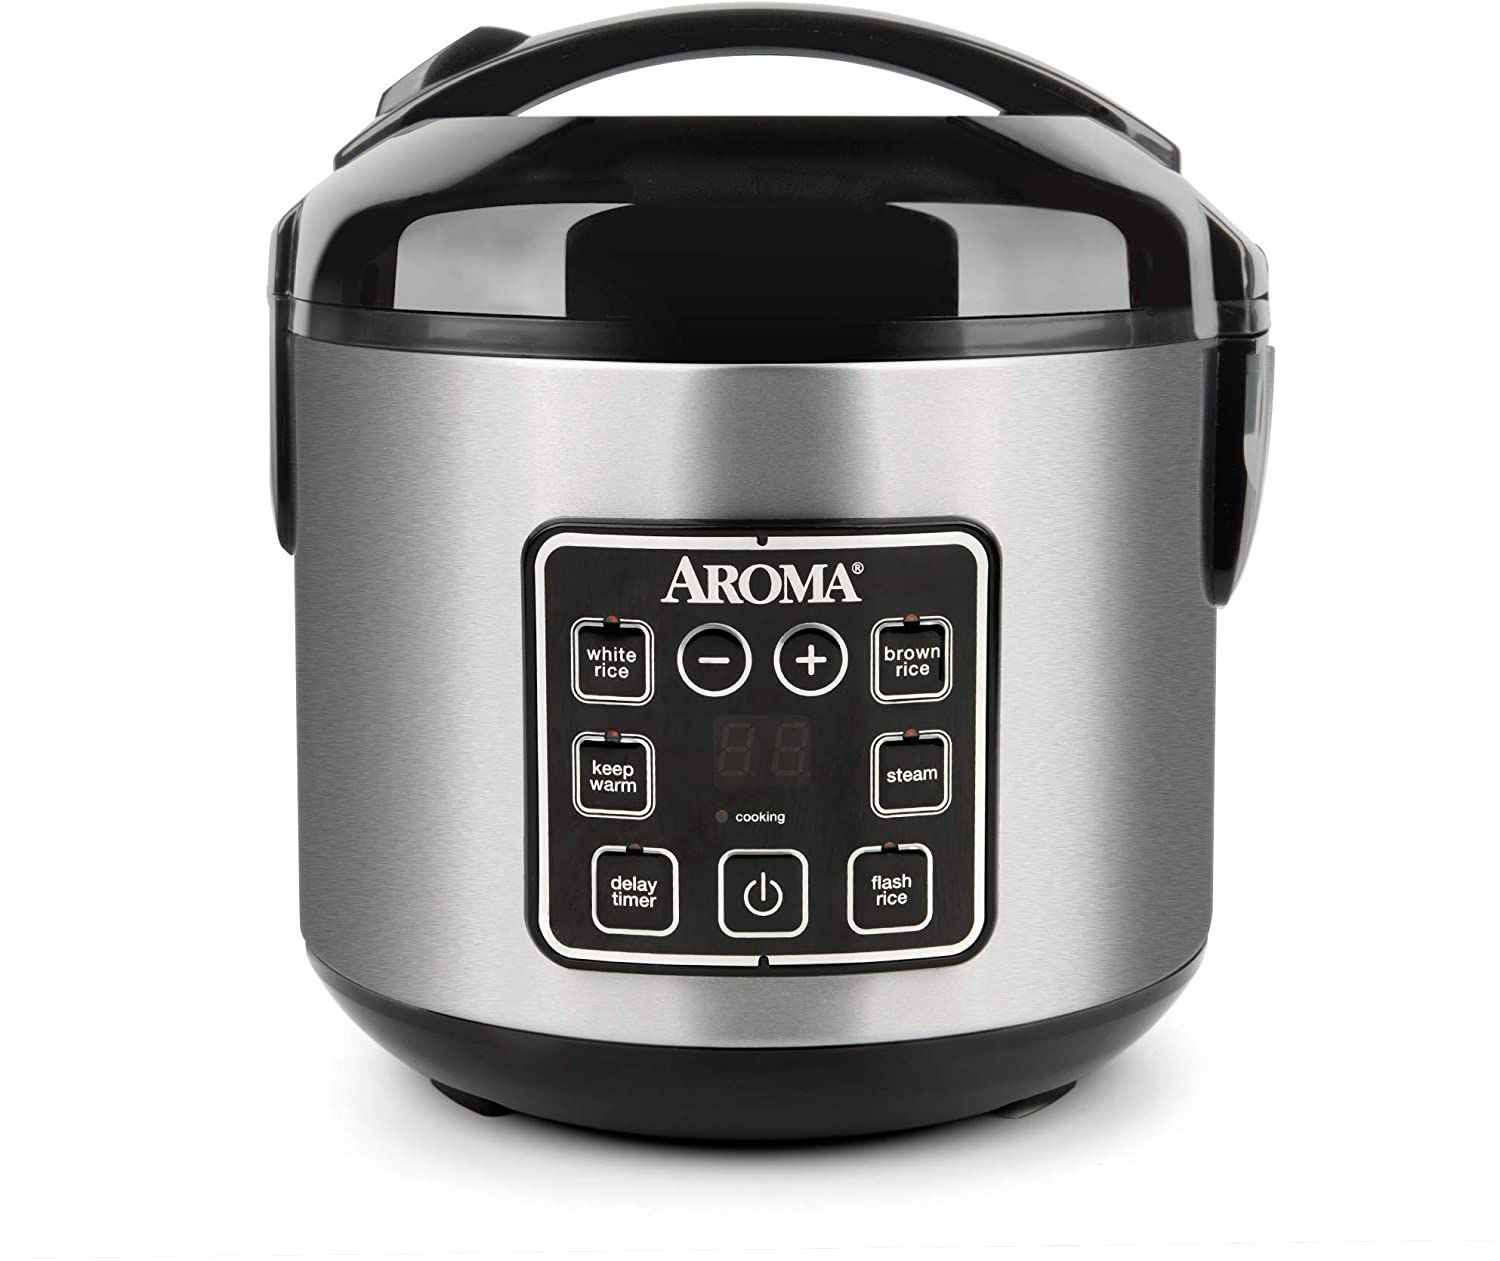 Aroma Housewares 8 Cup Rice and Grain Cooker